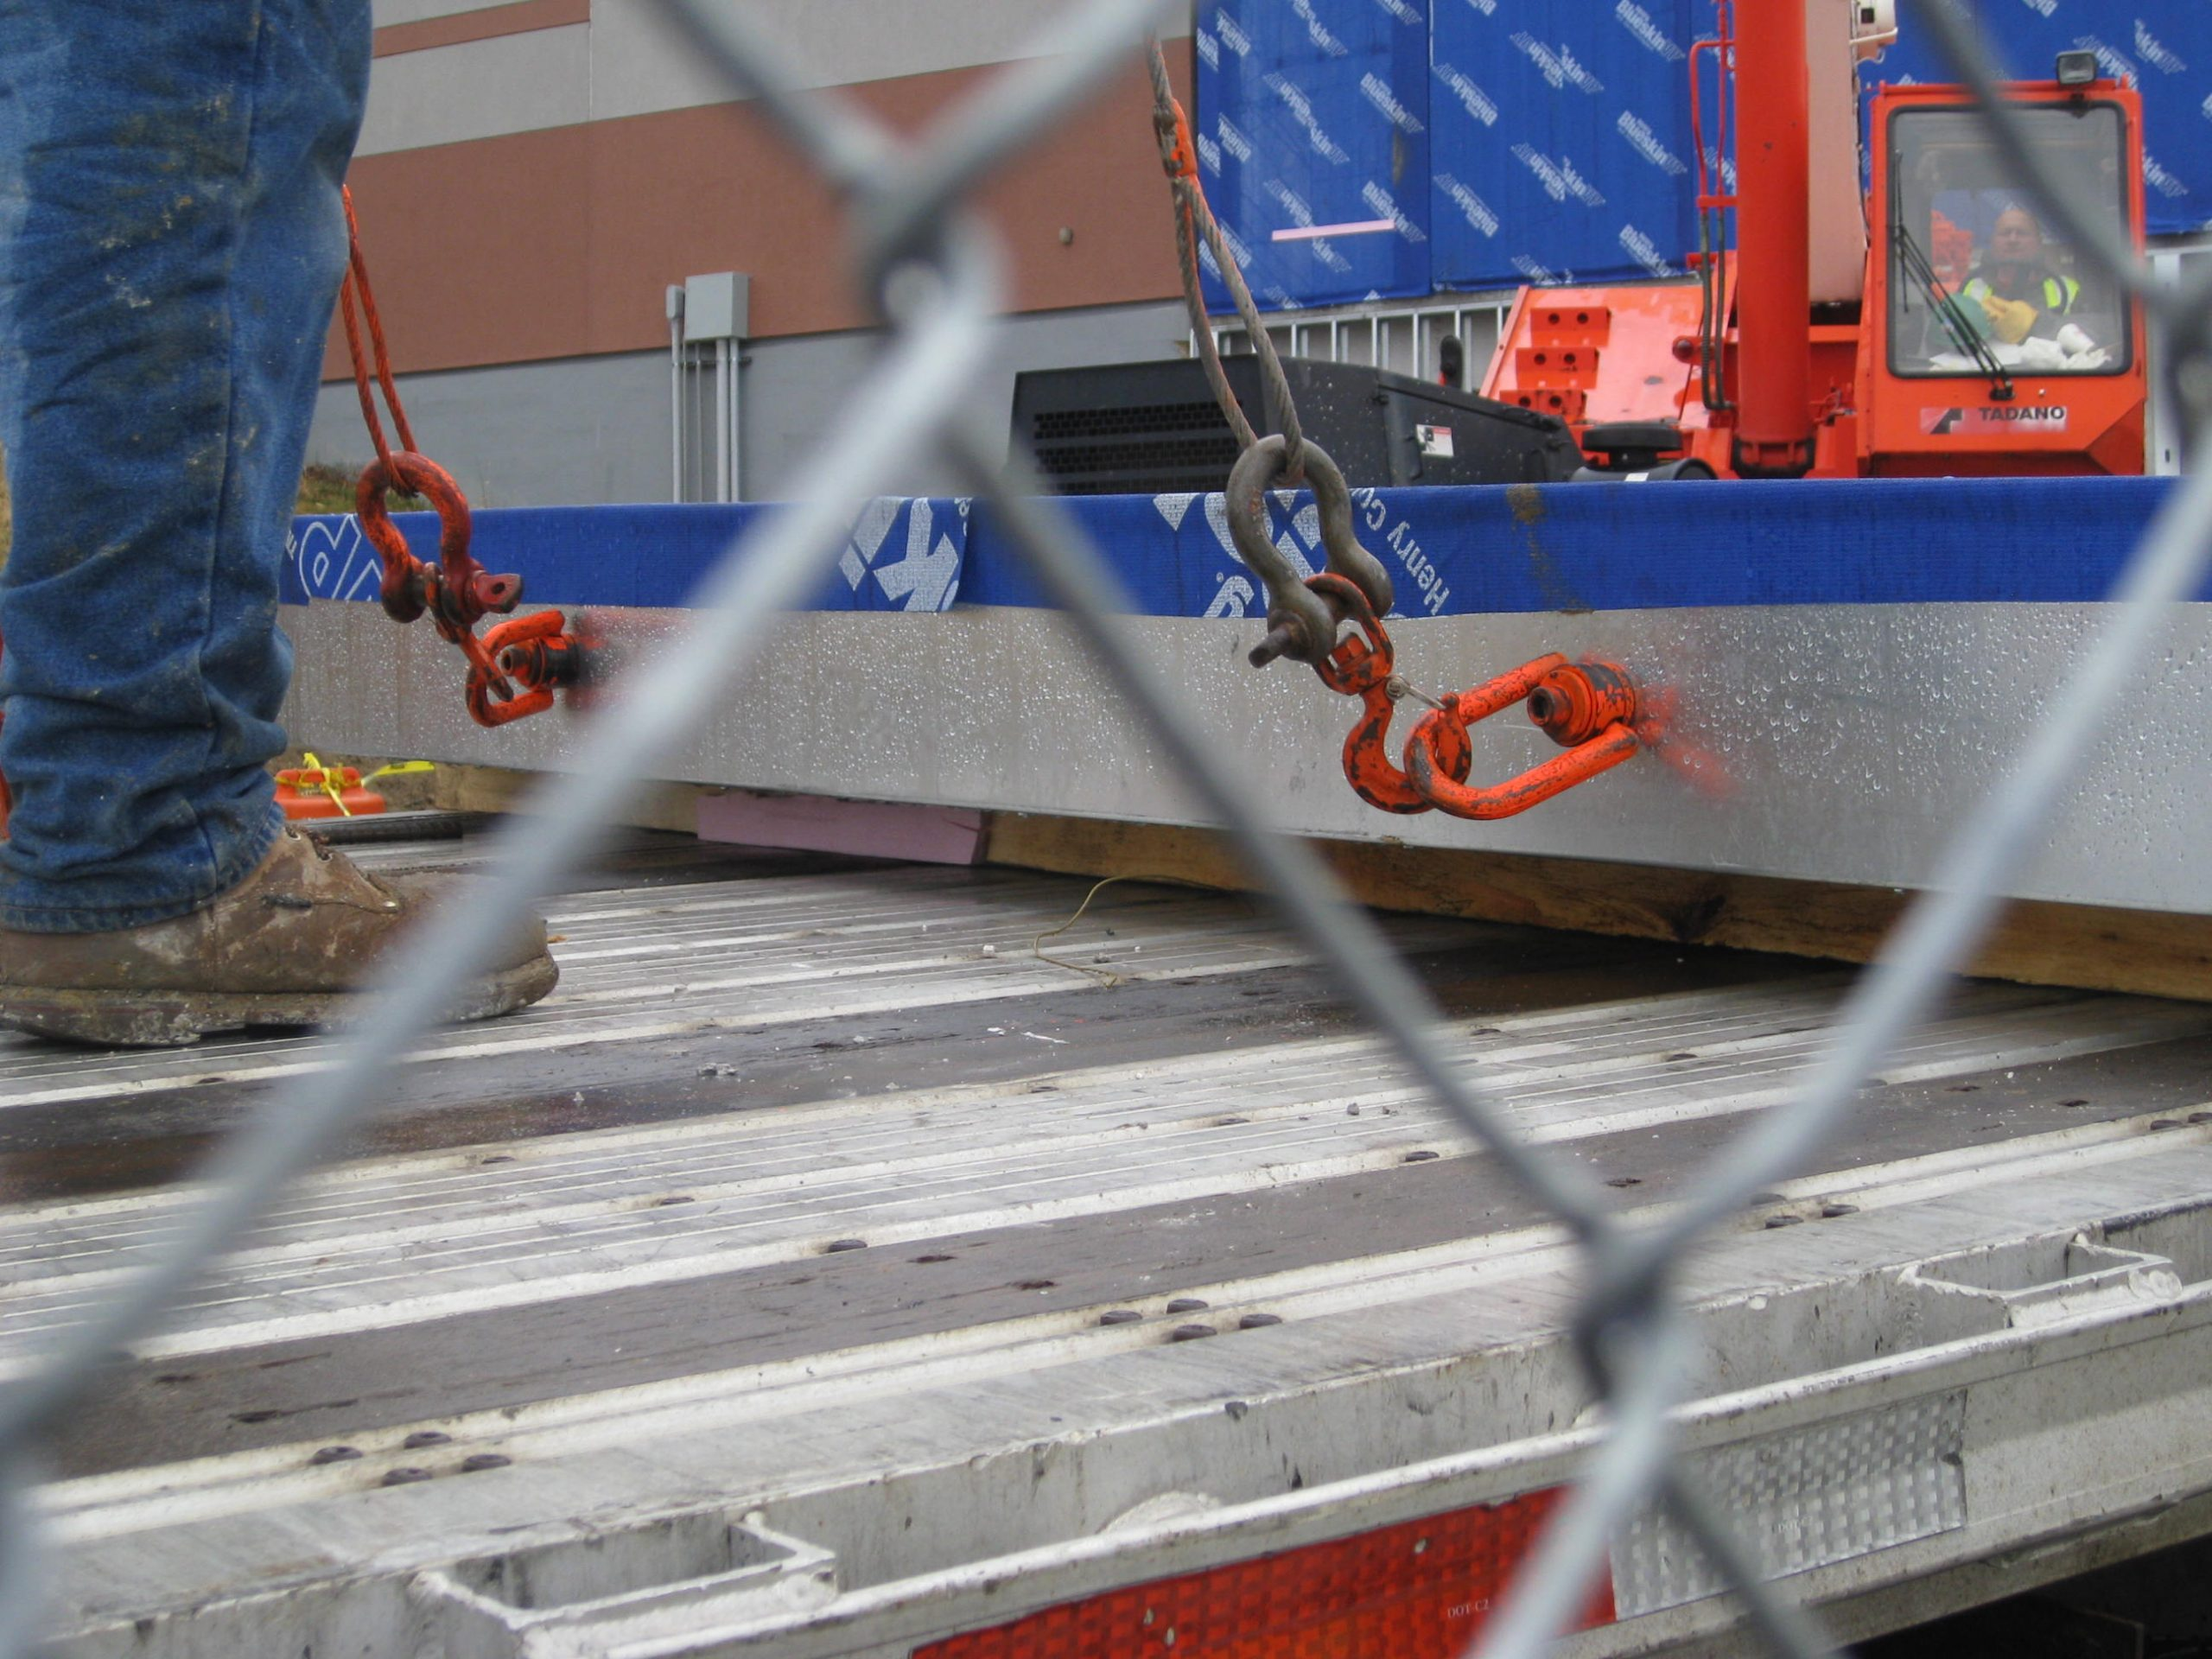 light gauge steel wall panel being moved into place by a crane